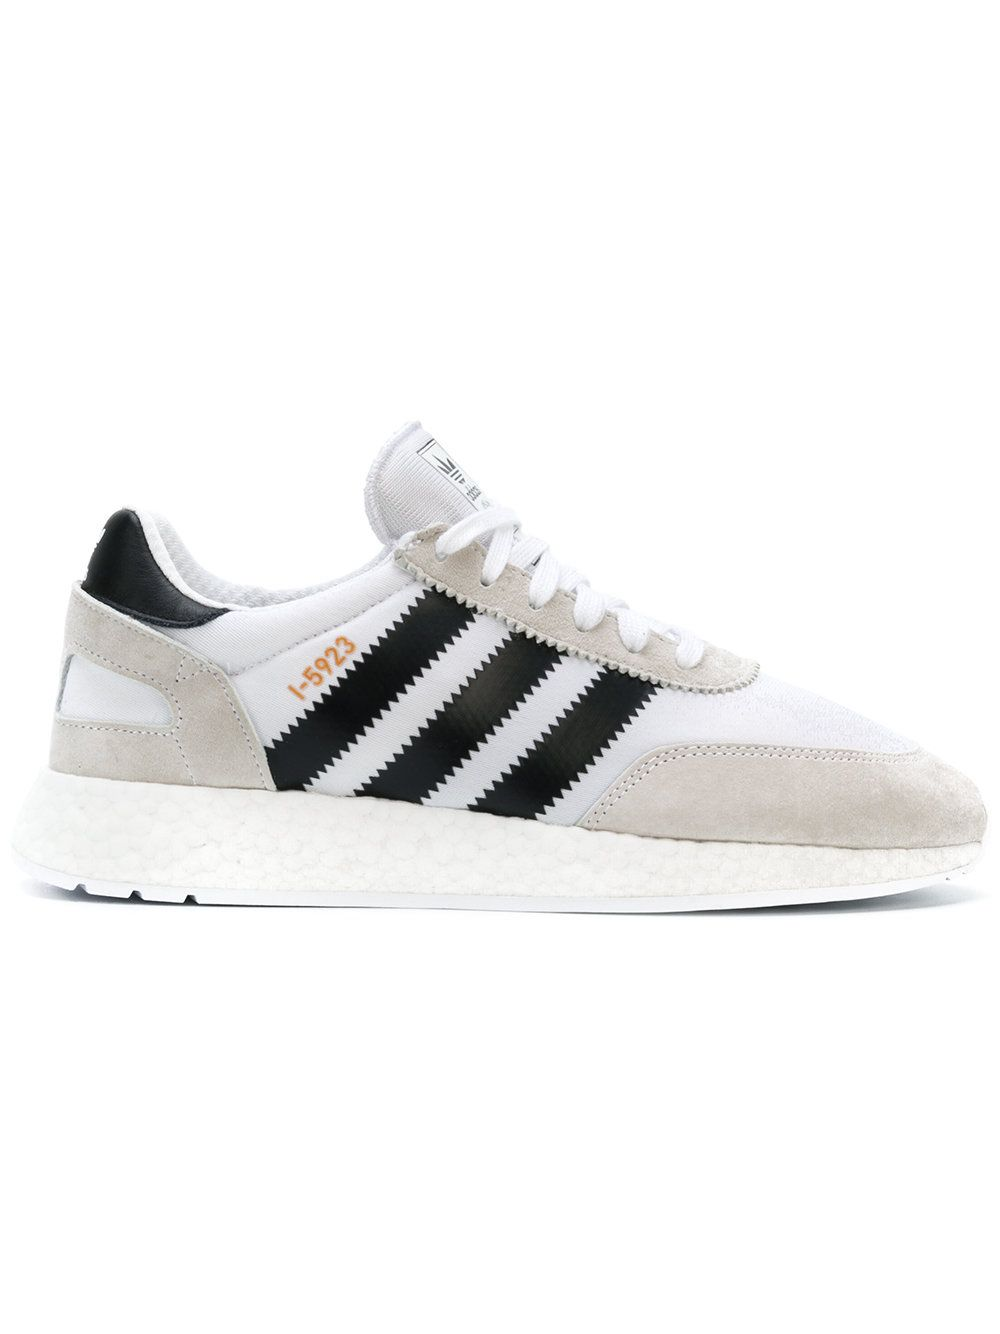 a00c2f8fb07 ADIDAS ORIGINALS . #adidasoriginals #shoes # | Adidas Originals ...